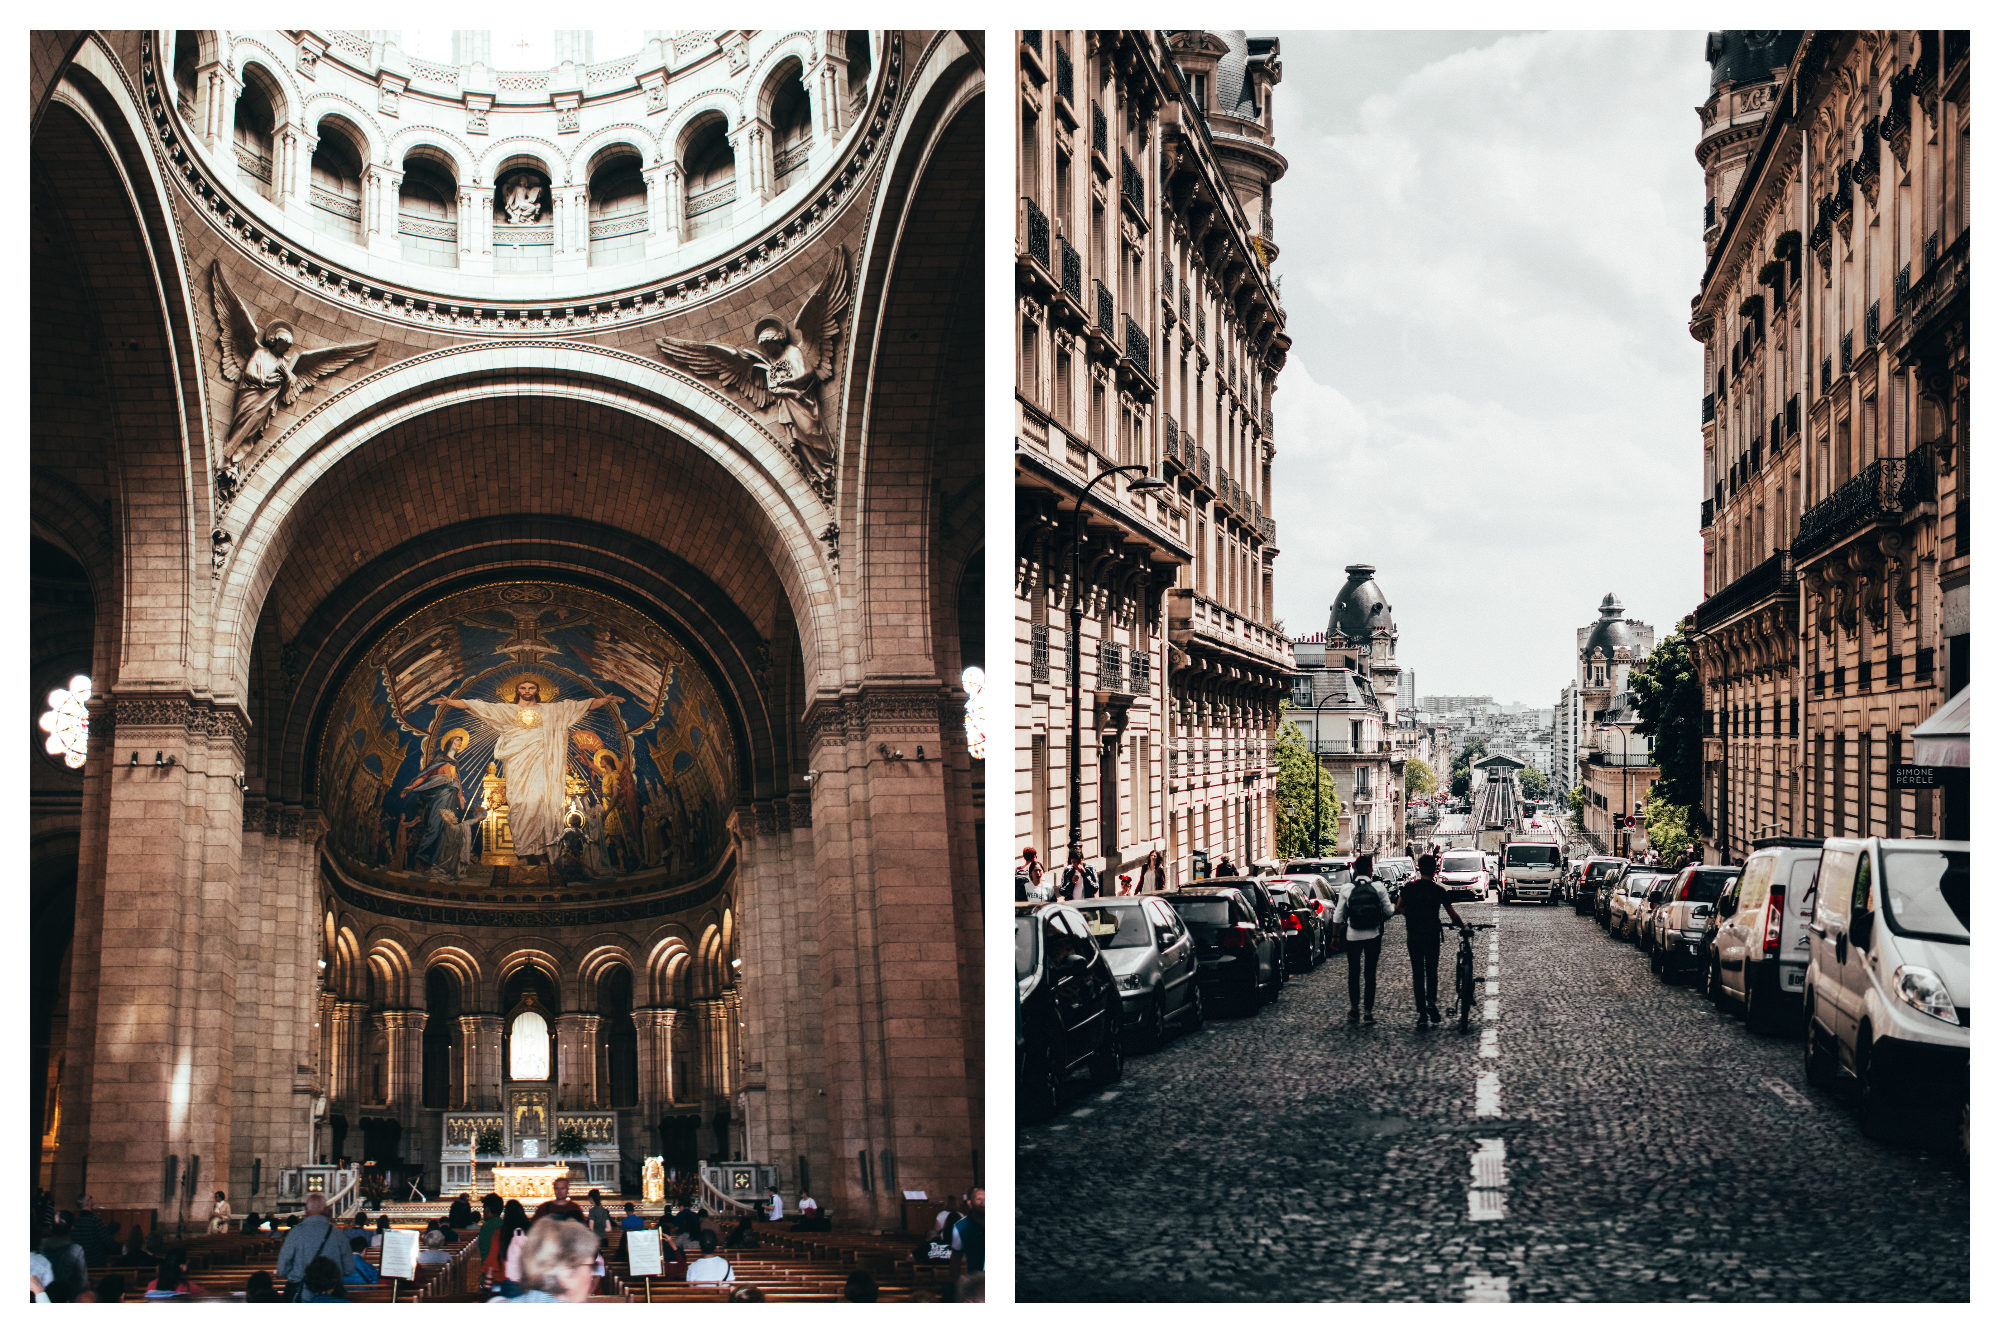 Inside a Paris church with a fresco of Jesus painted on the entire back wall (left). Cobblestone streets of Paris and two people walking along (right).